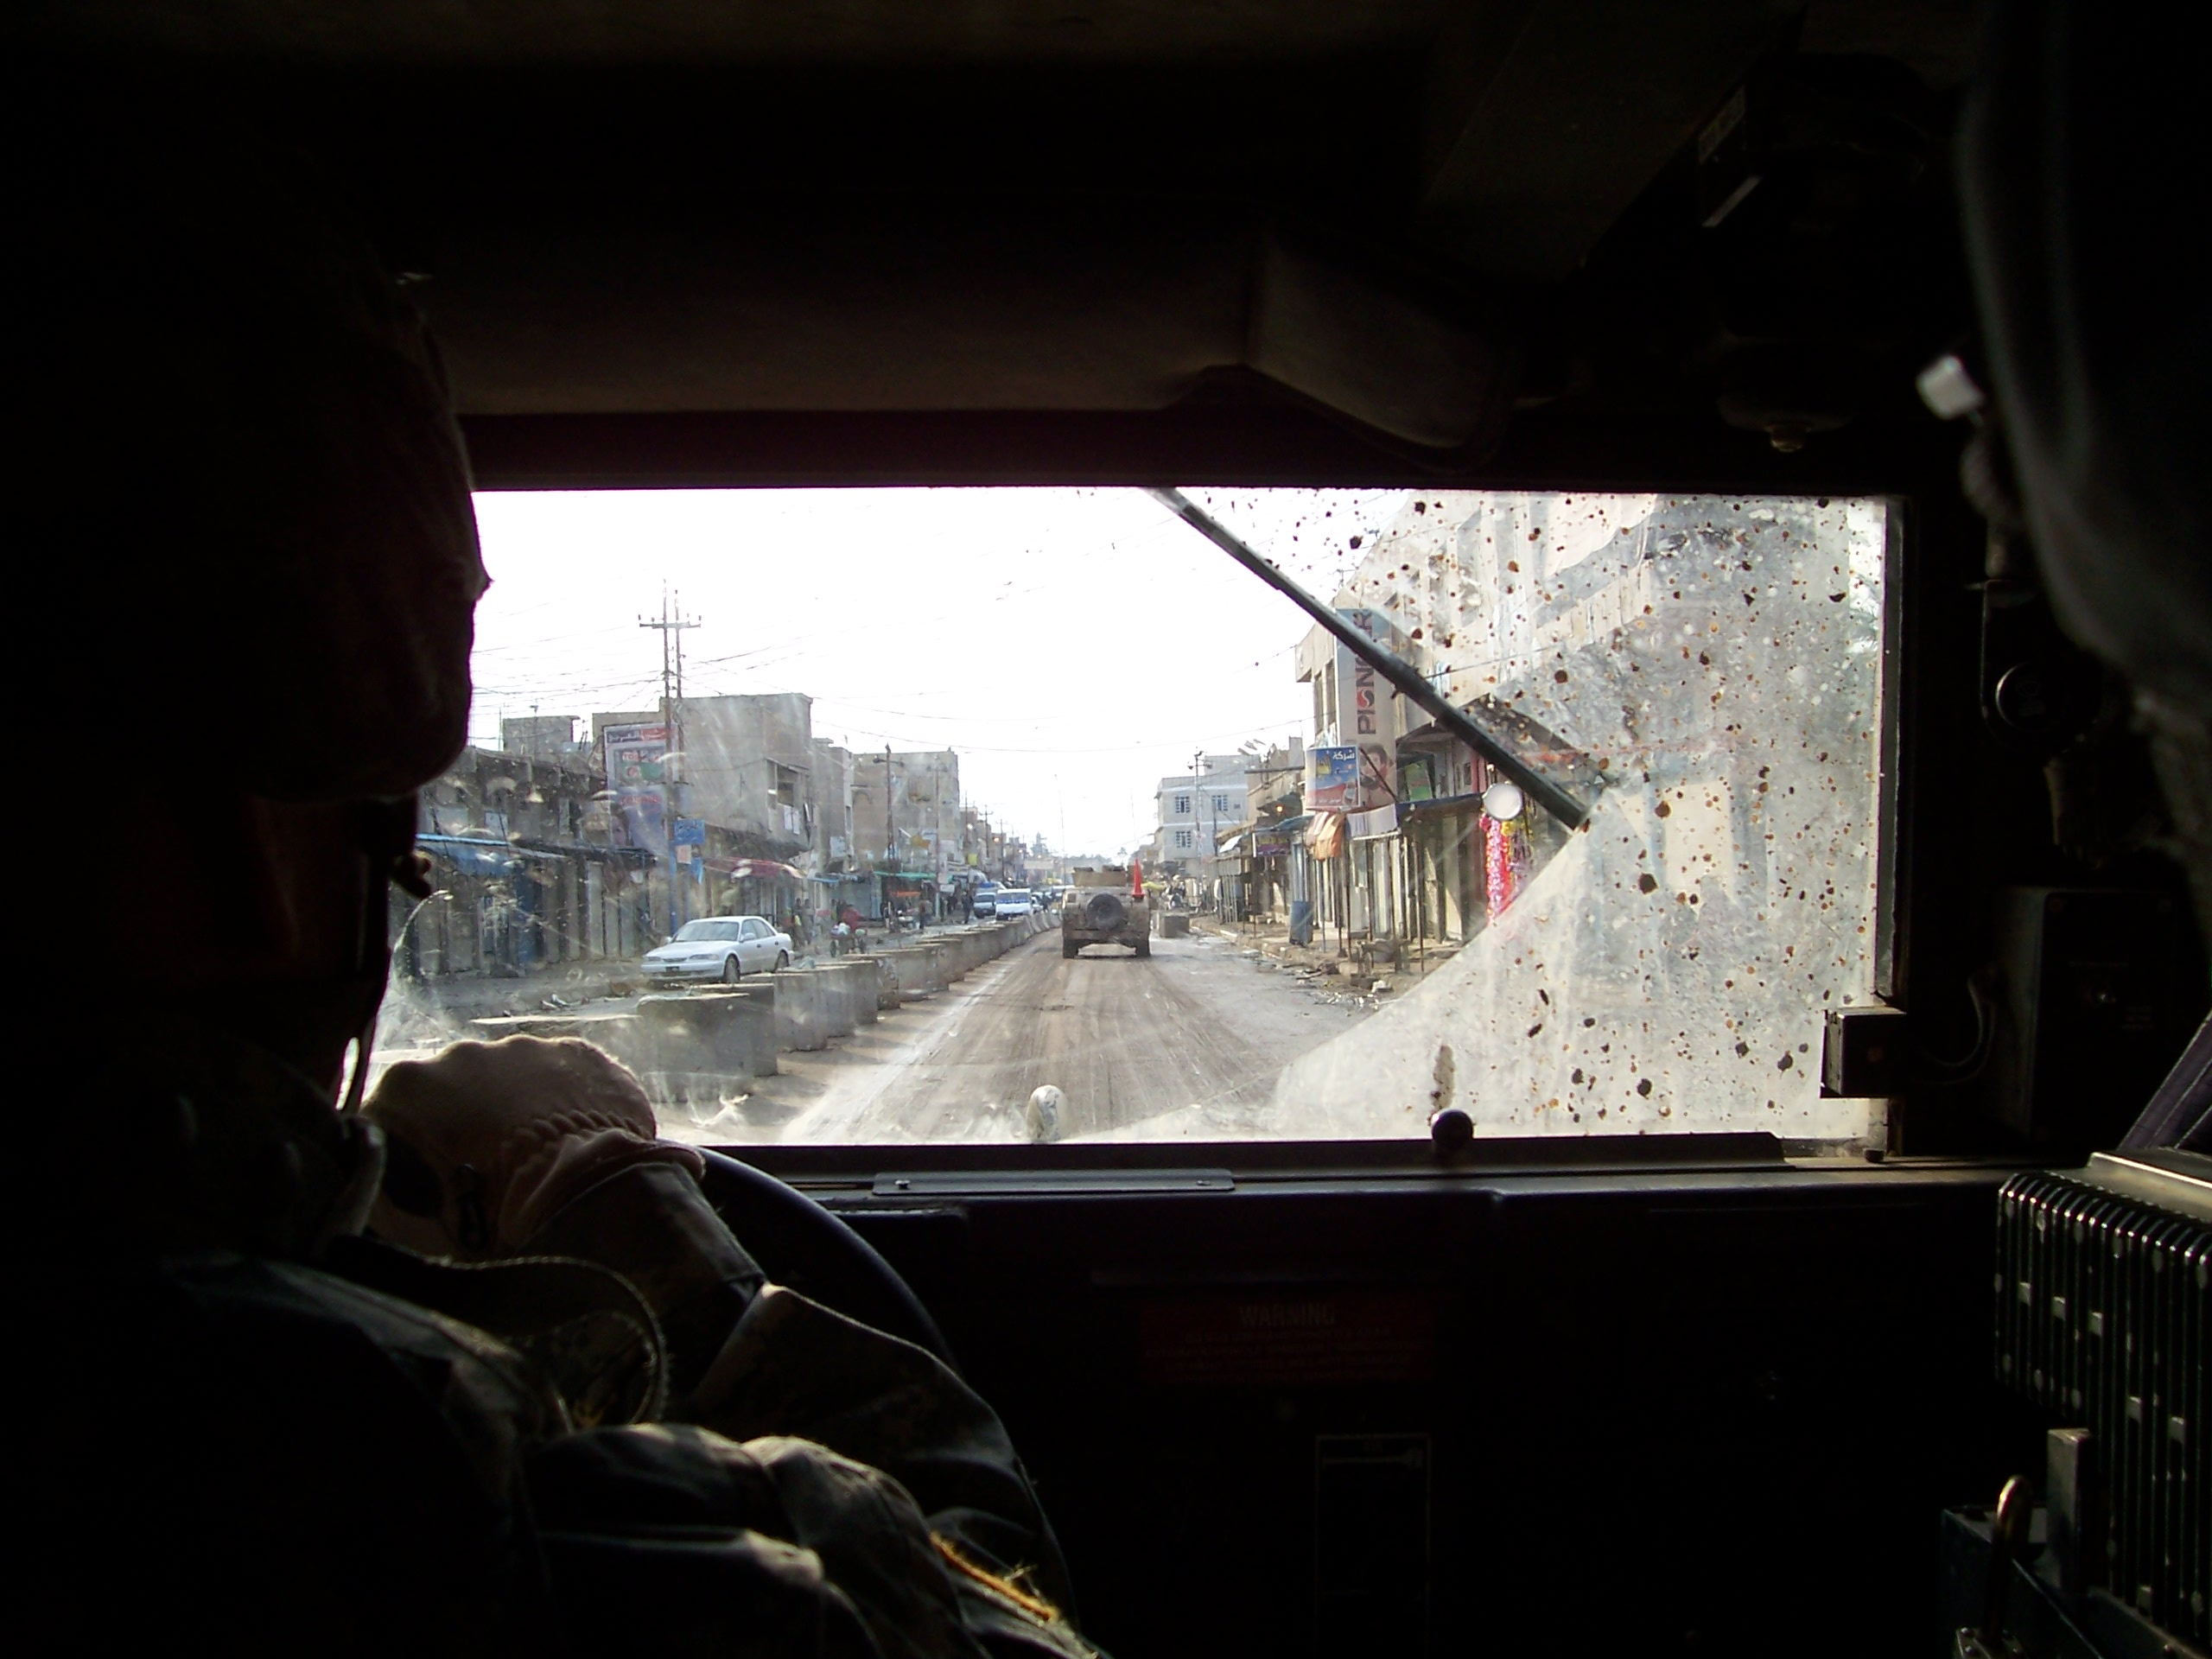 The driver's view of the world is small; his responsibilities are great, and privileges small, but driving in Iraq can be fun. Besides the ever-present threat of roadside bombs, Humvee drivers have to contend with the roads and drivers of Iraq.